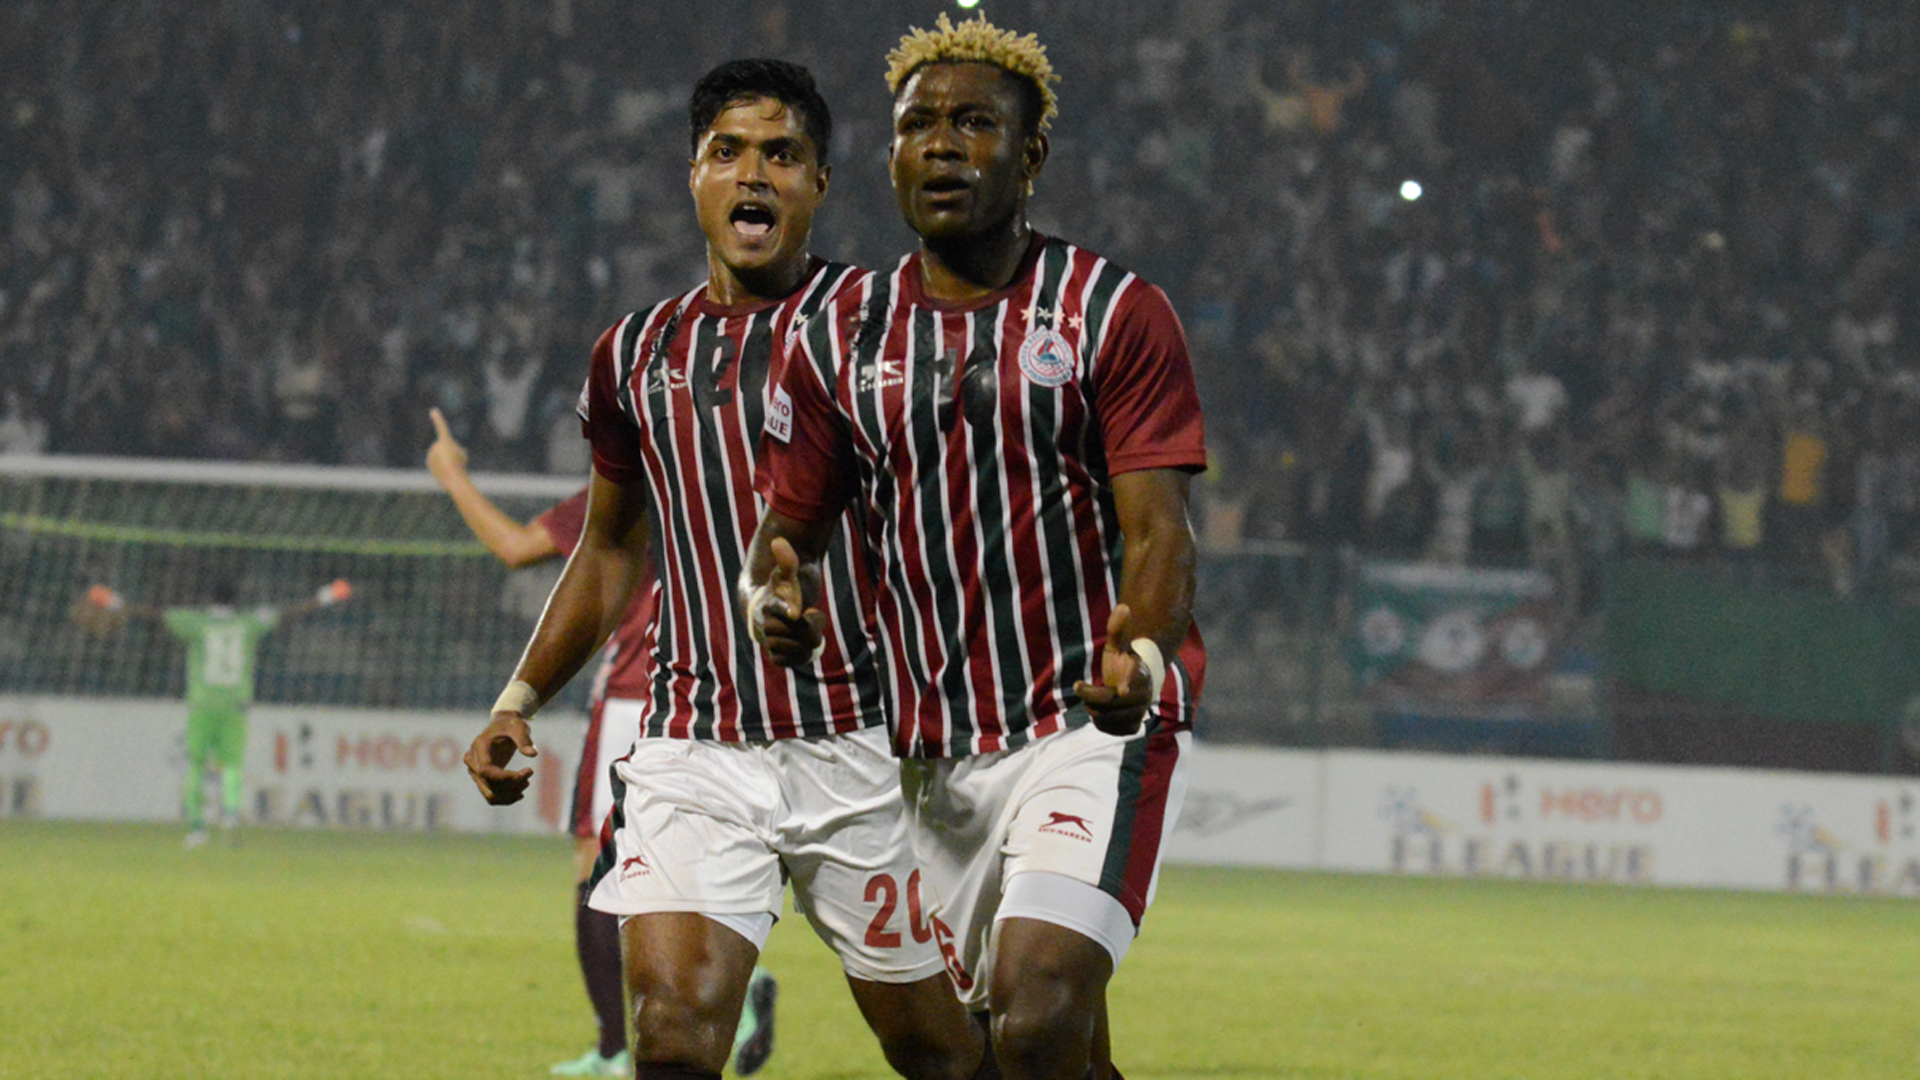 Sony Norde Mohun Bagan East Bengal I-League 2017